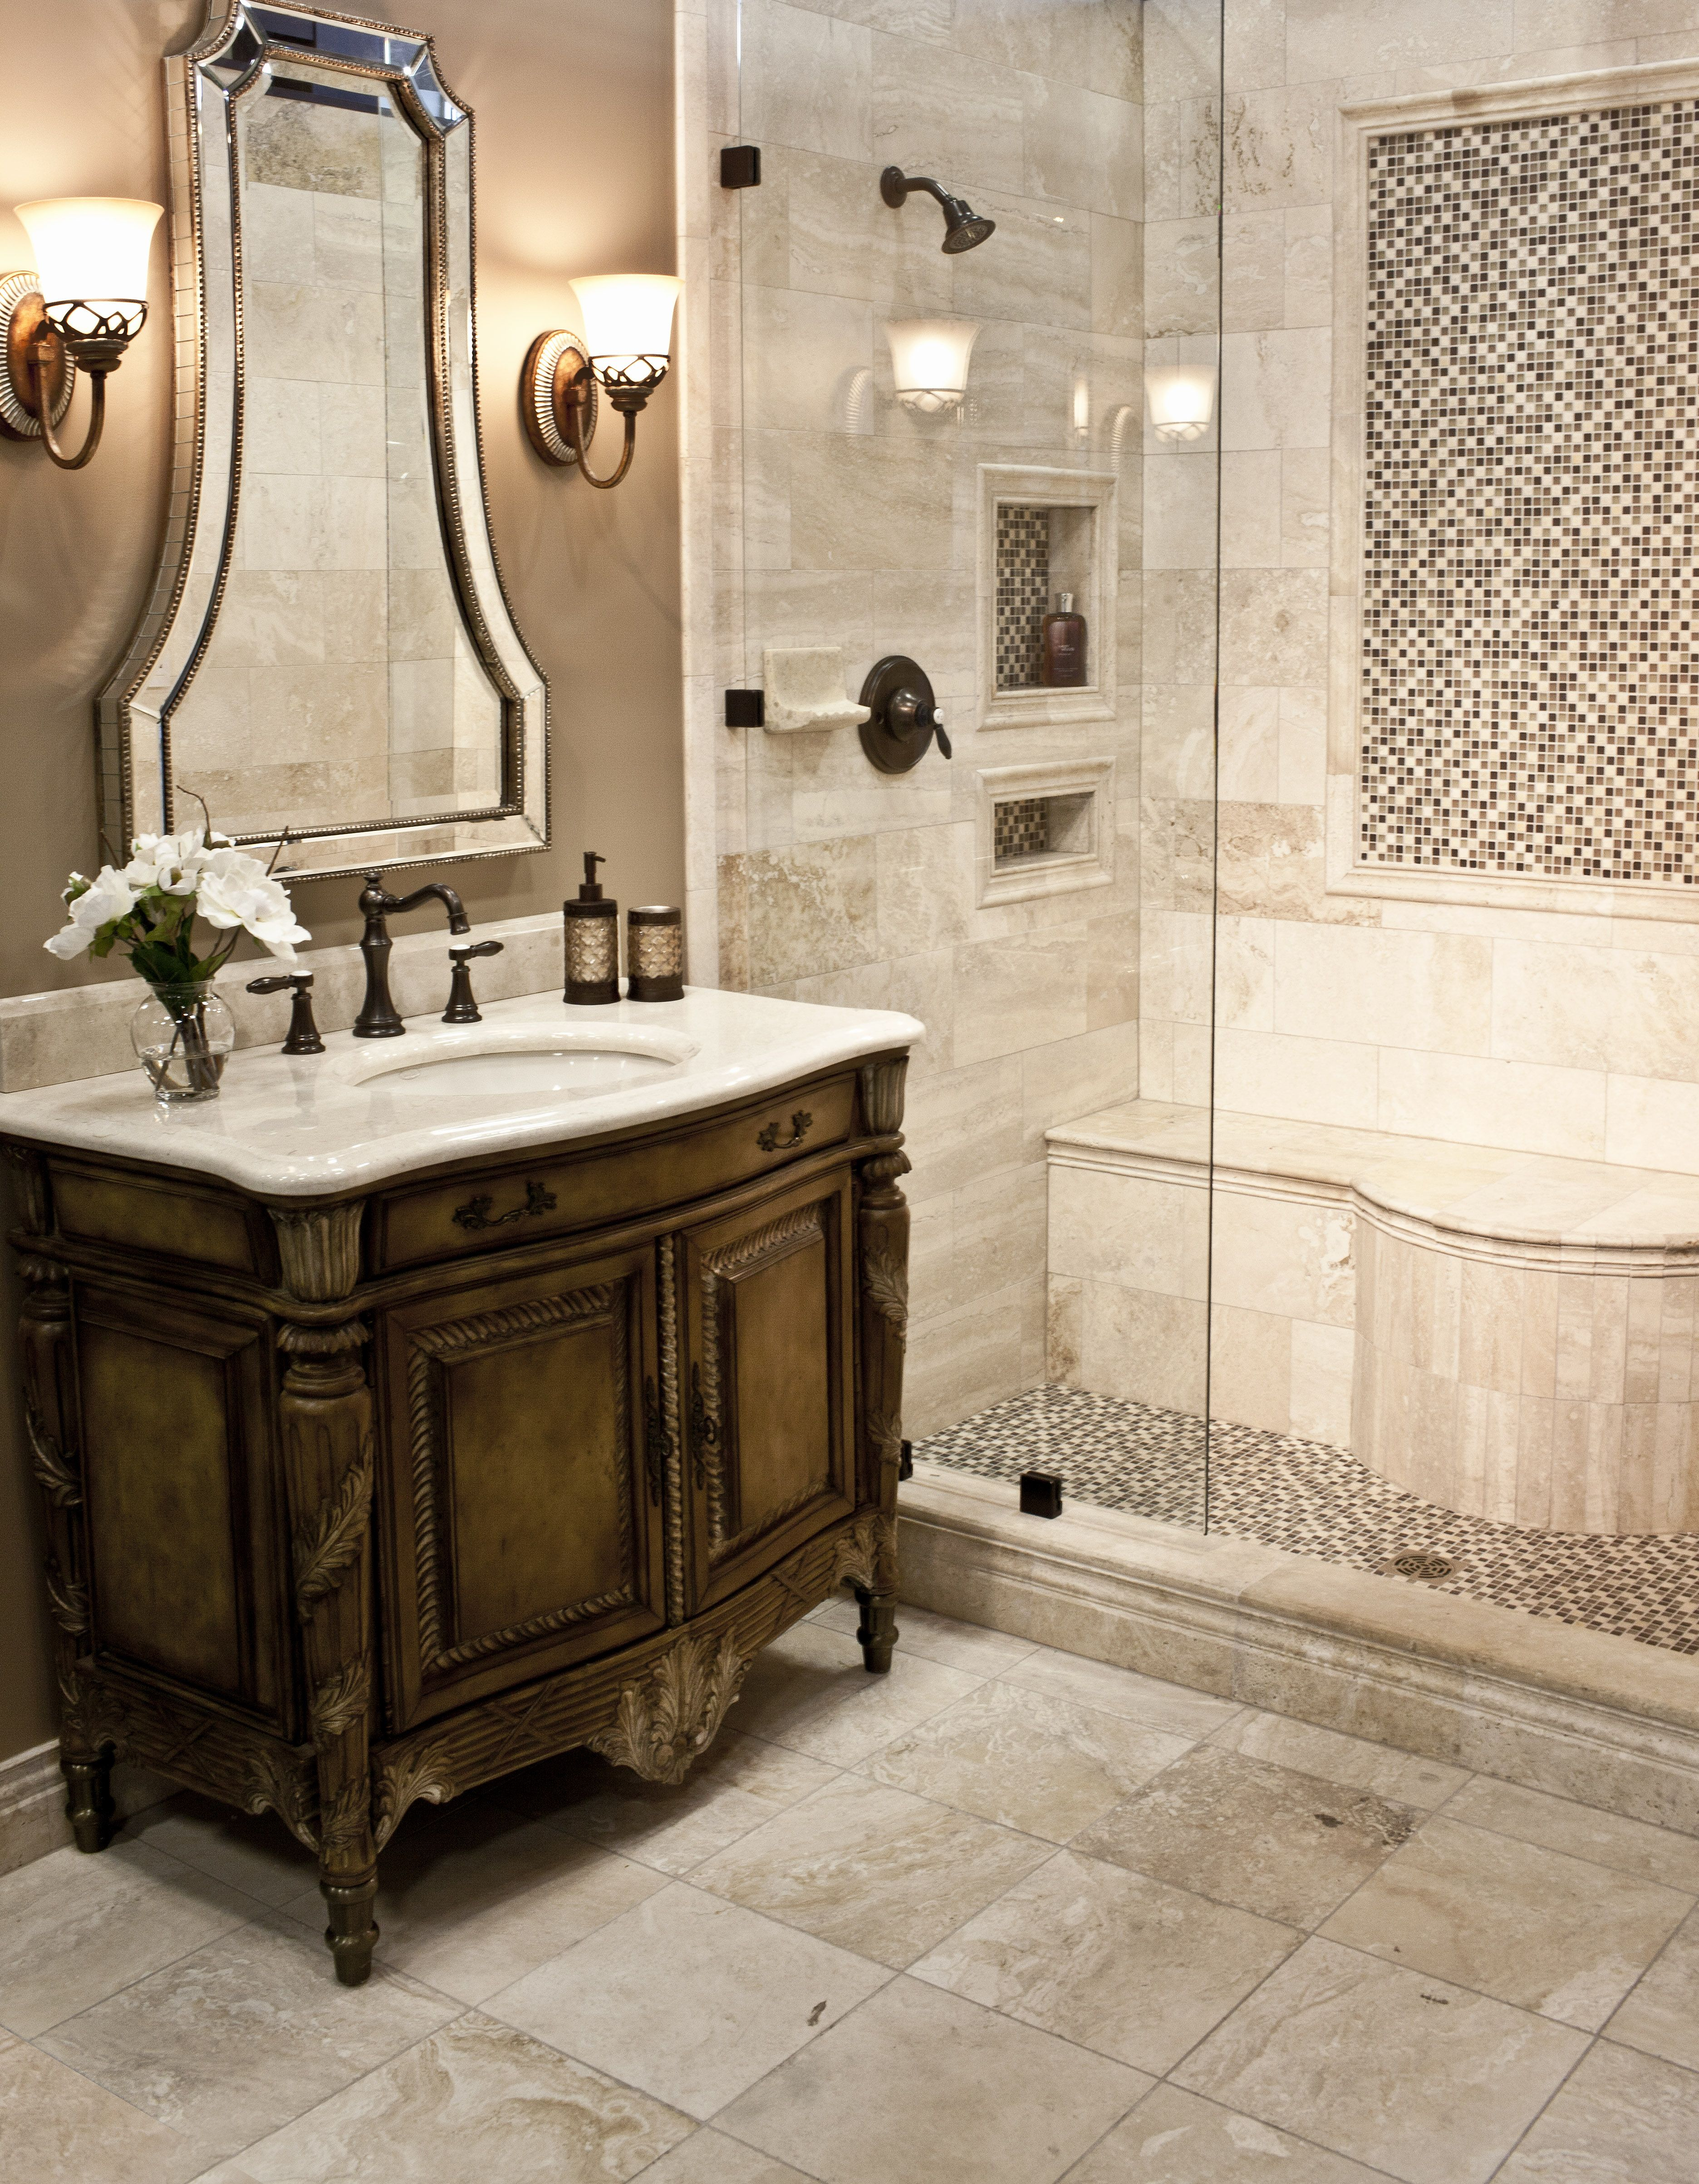 Traditional Bathroom Design at its Best. | Bathroom in 2018 ...